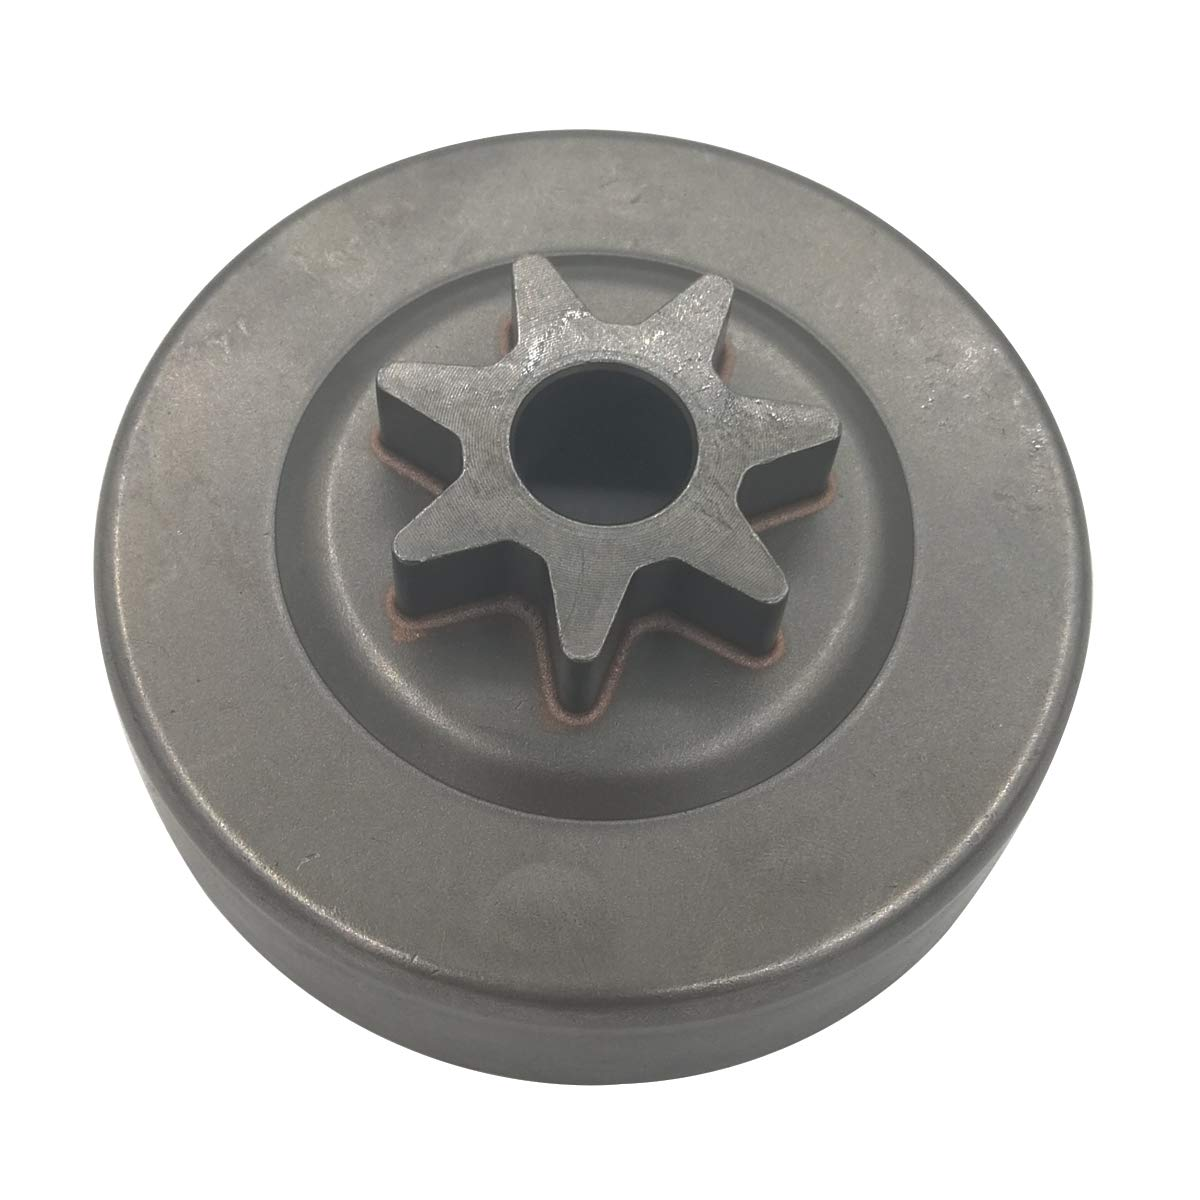 Clutch Drum Sprocket Cover For Stihl 029 034 036 039 MS290 MS310 MS390 Chainsaw 1125 640 2000 2004 Suzhou Cancanle Trading Co. Ltd.